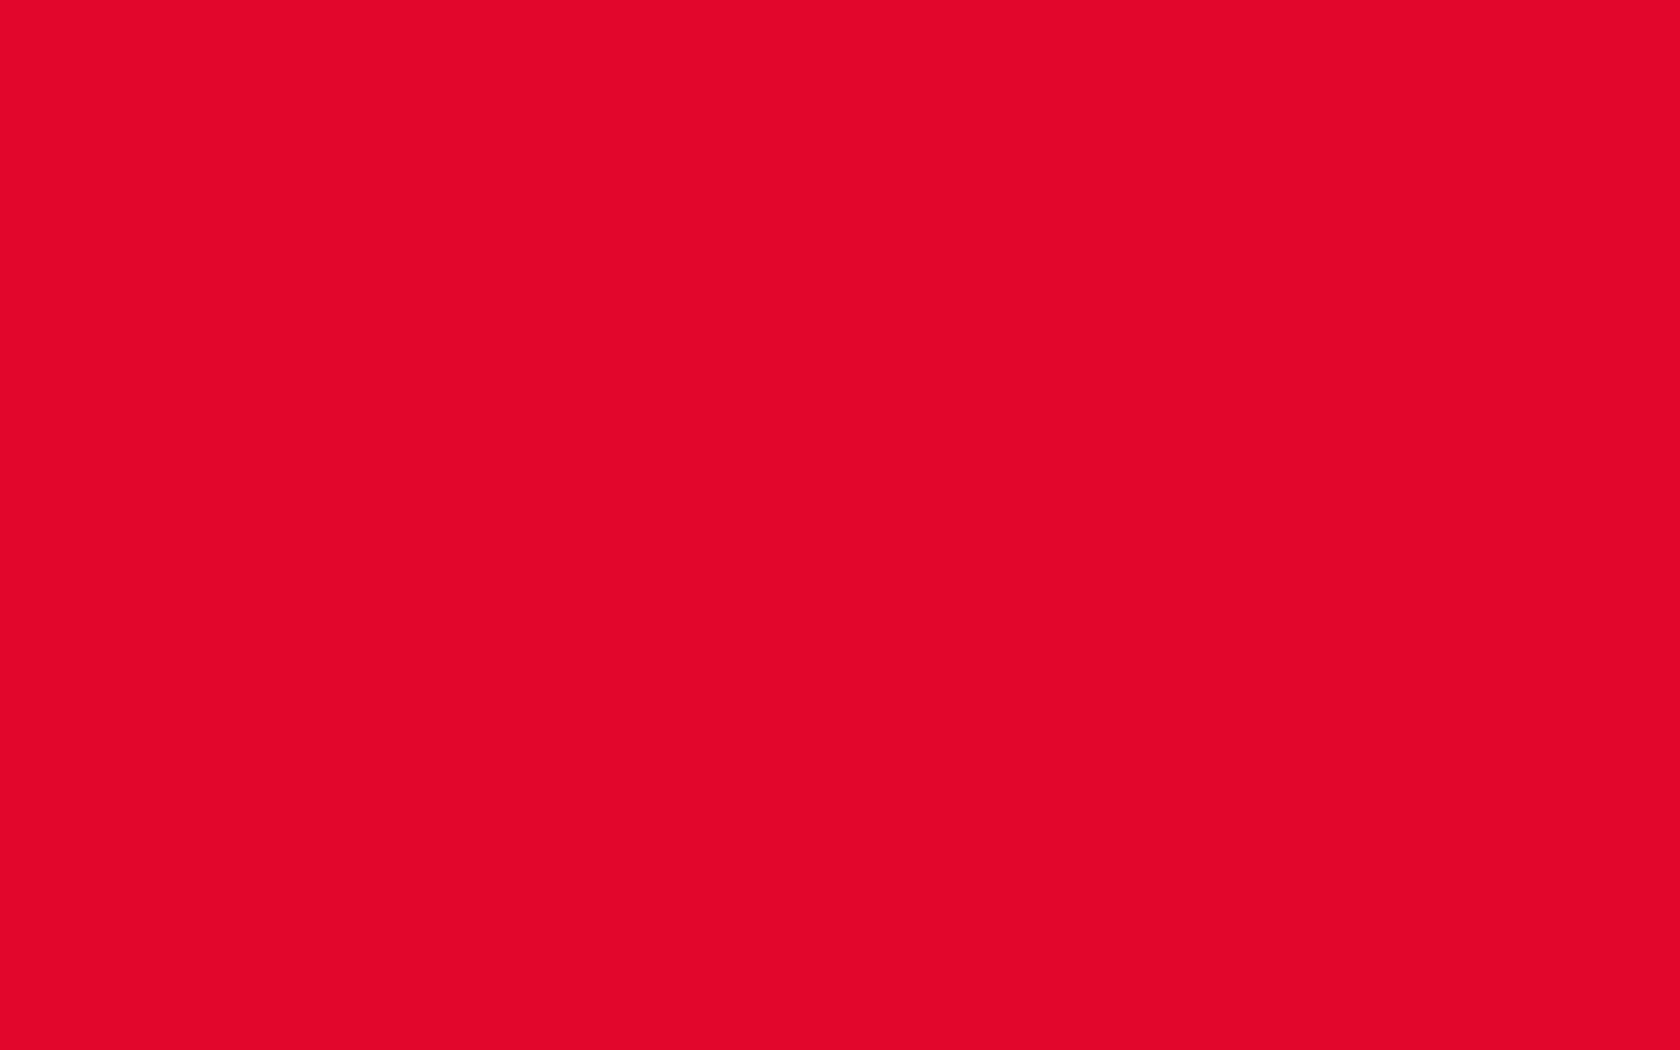 1680x1050 Medium Candy Apple Red Solid Color Background